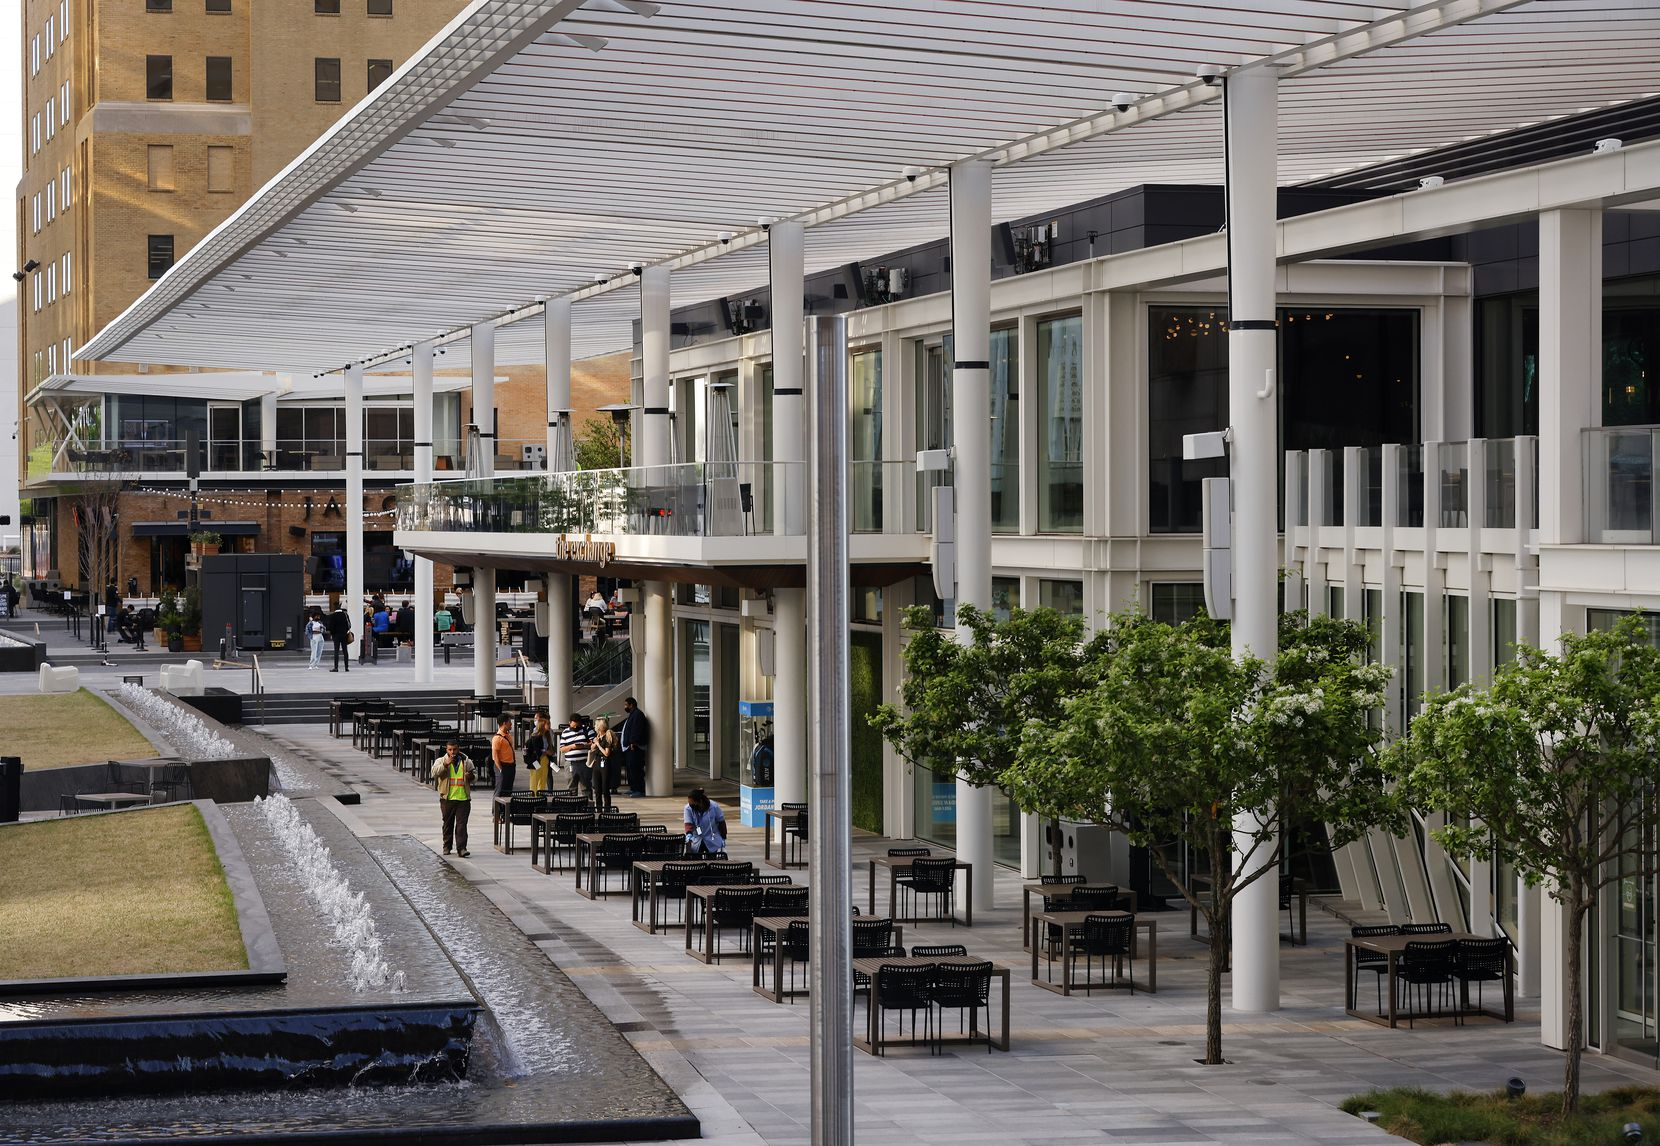 Steel trellises cover the outdoor dining area of the The Exchange food hall in the new AT&T Discovery District in downtown Dallas, Tuesday, April 20, 2021.